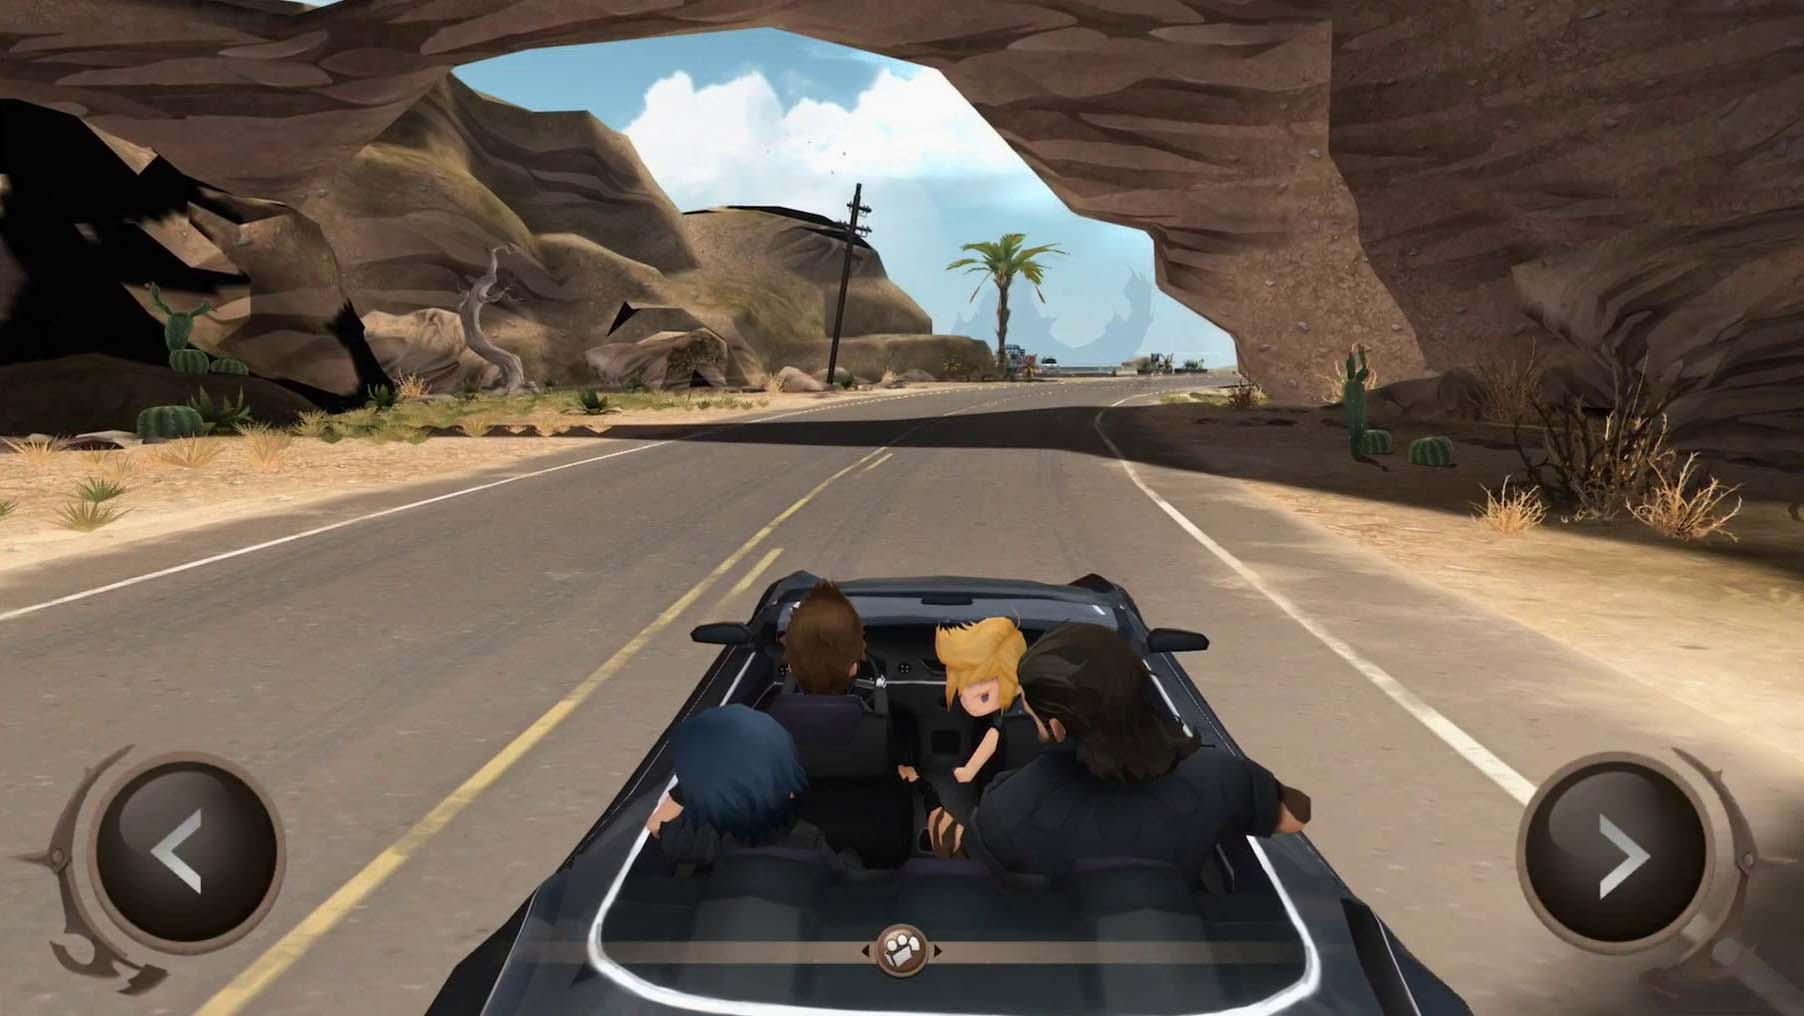 Play Final Fantasy 15 on the go with the new Pocket Edition!